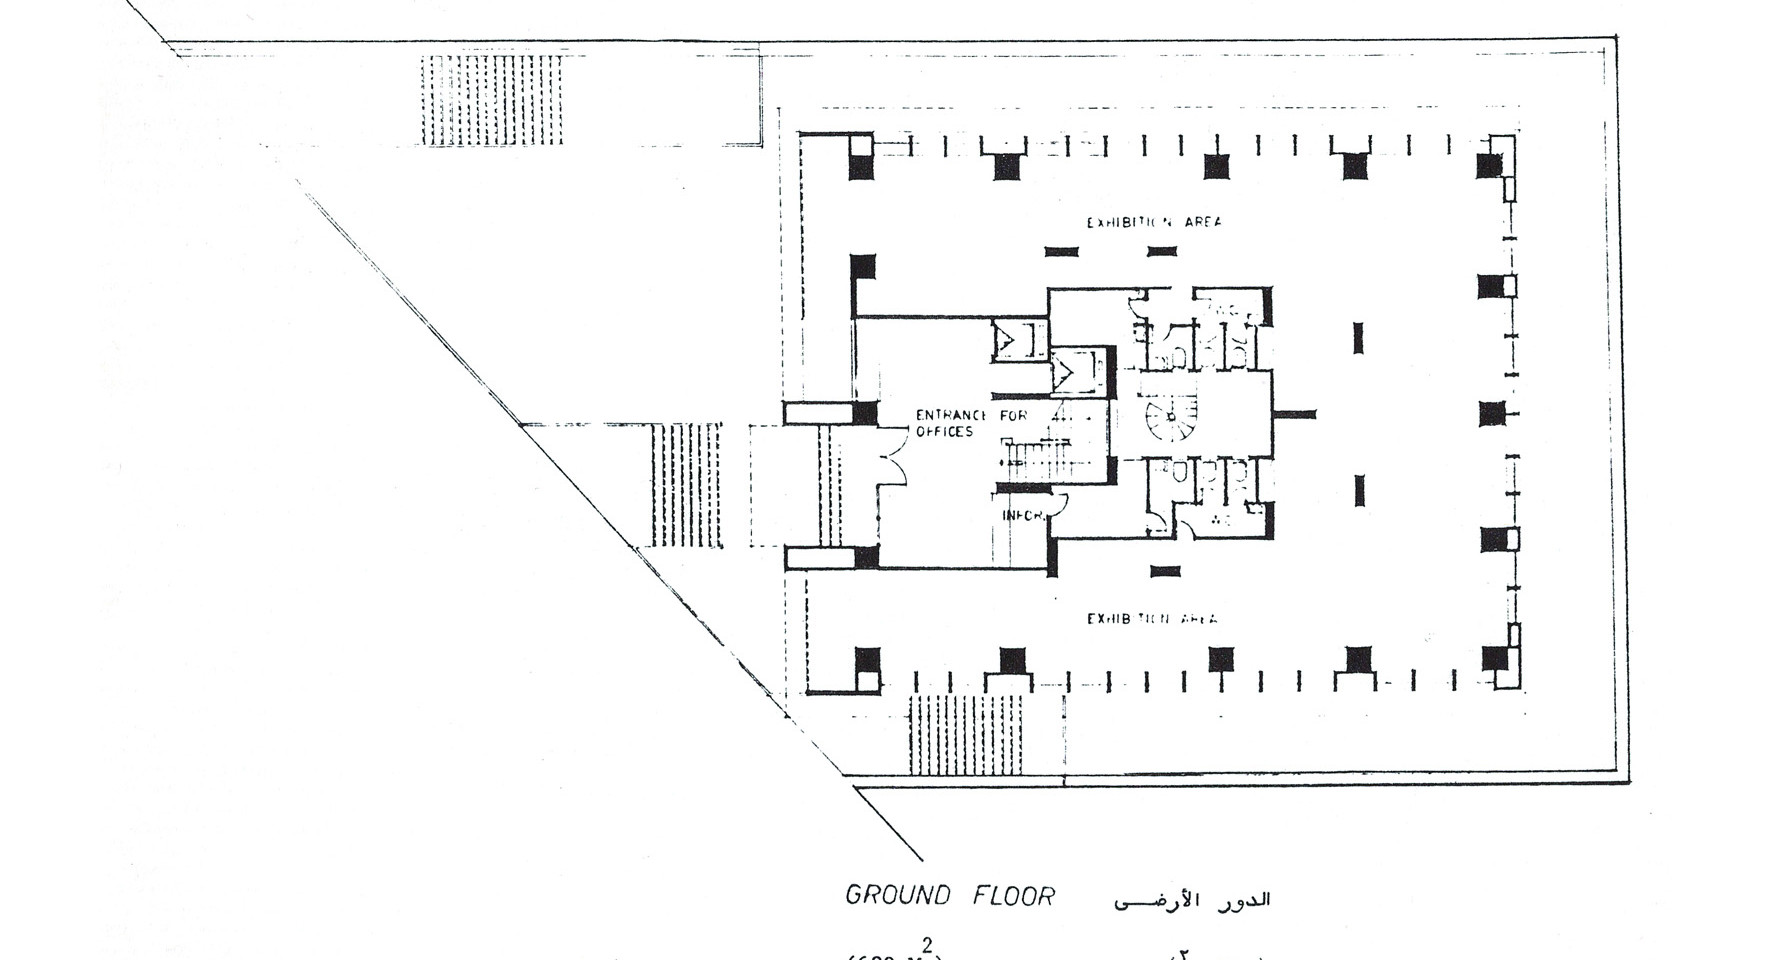 Hedico Main Office Building Ground Floor Plan